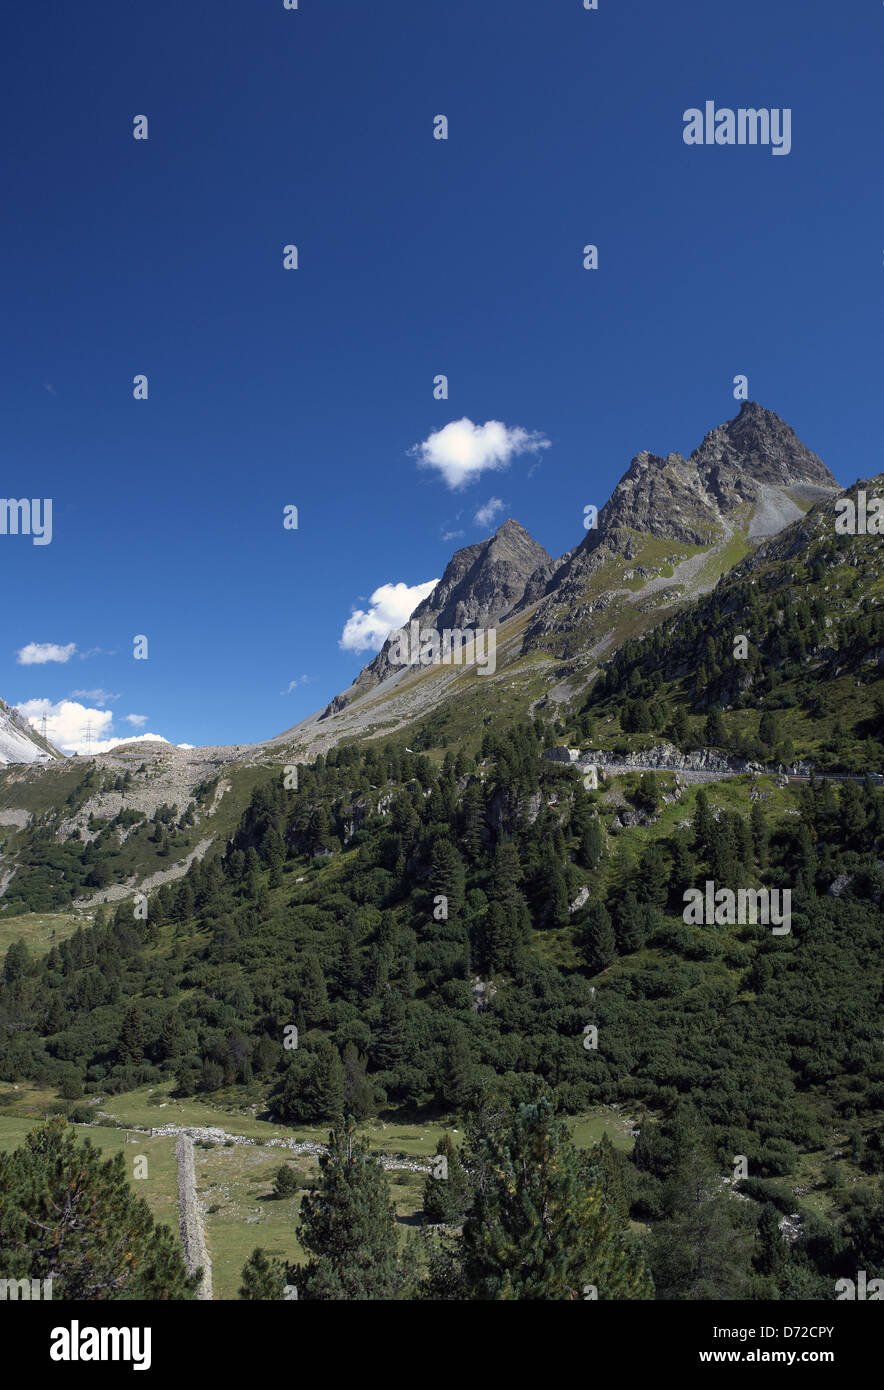 Alp Nova, Switzerland, Albulapass view to the south up to the pass height - Stock Image